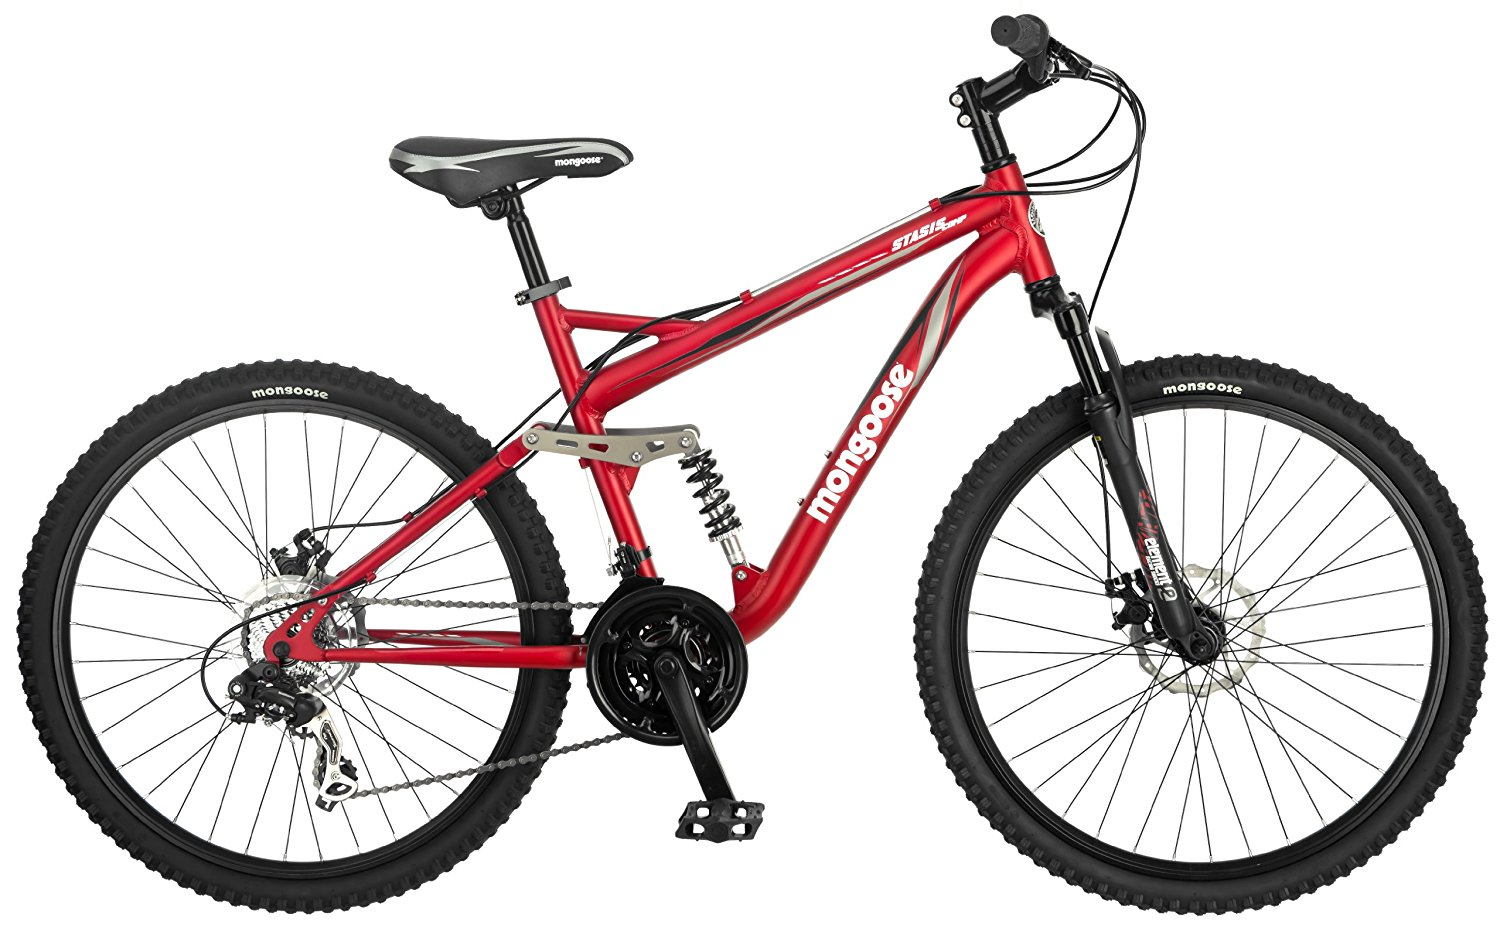 Best Mountain Bikes Under $500 For The Money